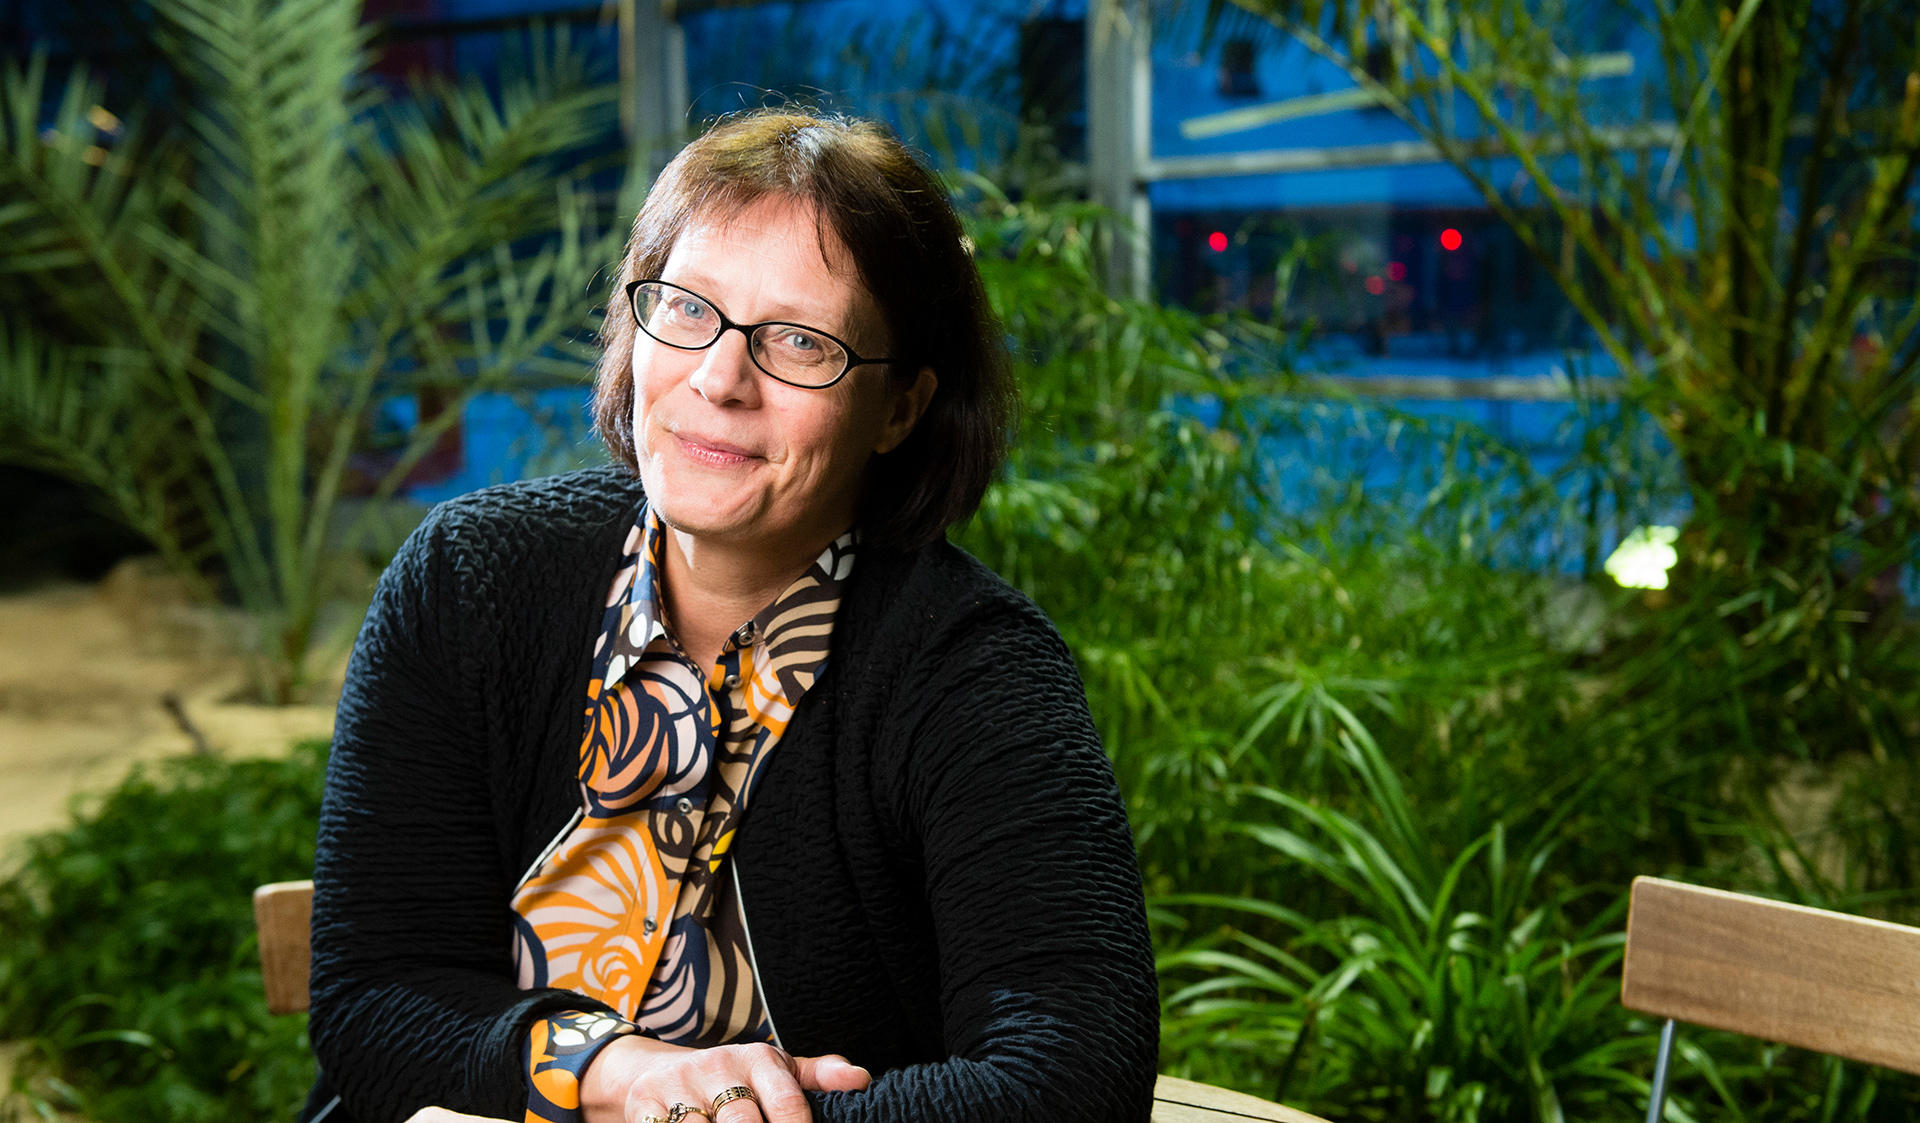 Vice-dean Maija Tenkanen, Faculty of Agriculture and Forestry, University of Helsinki